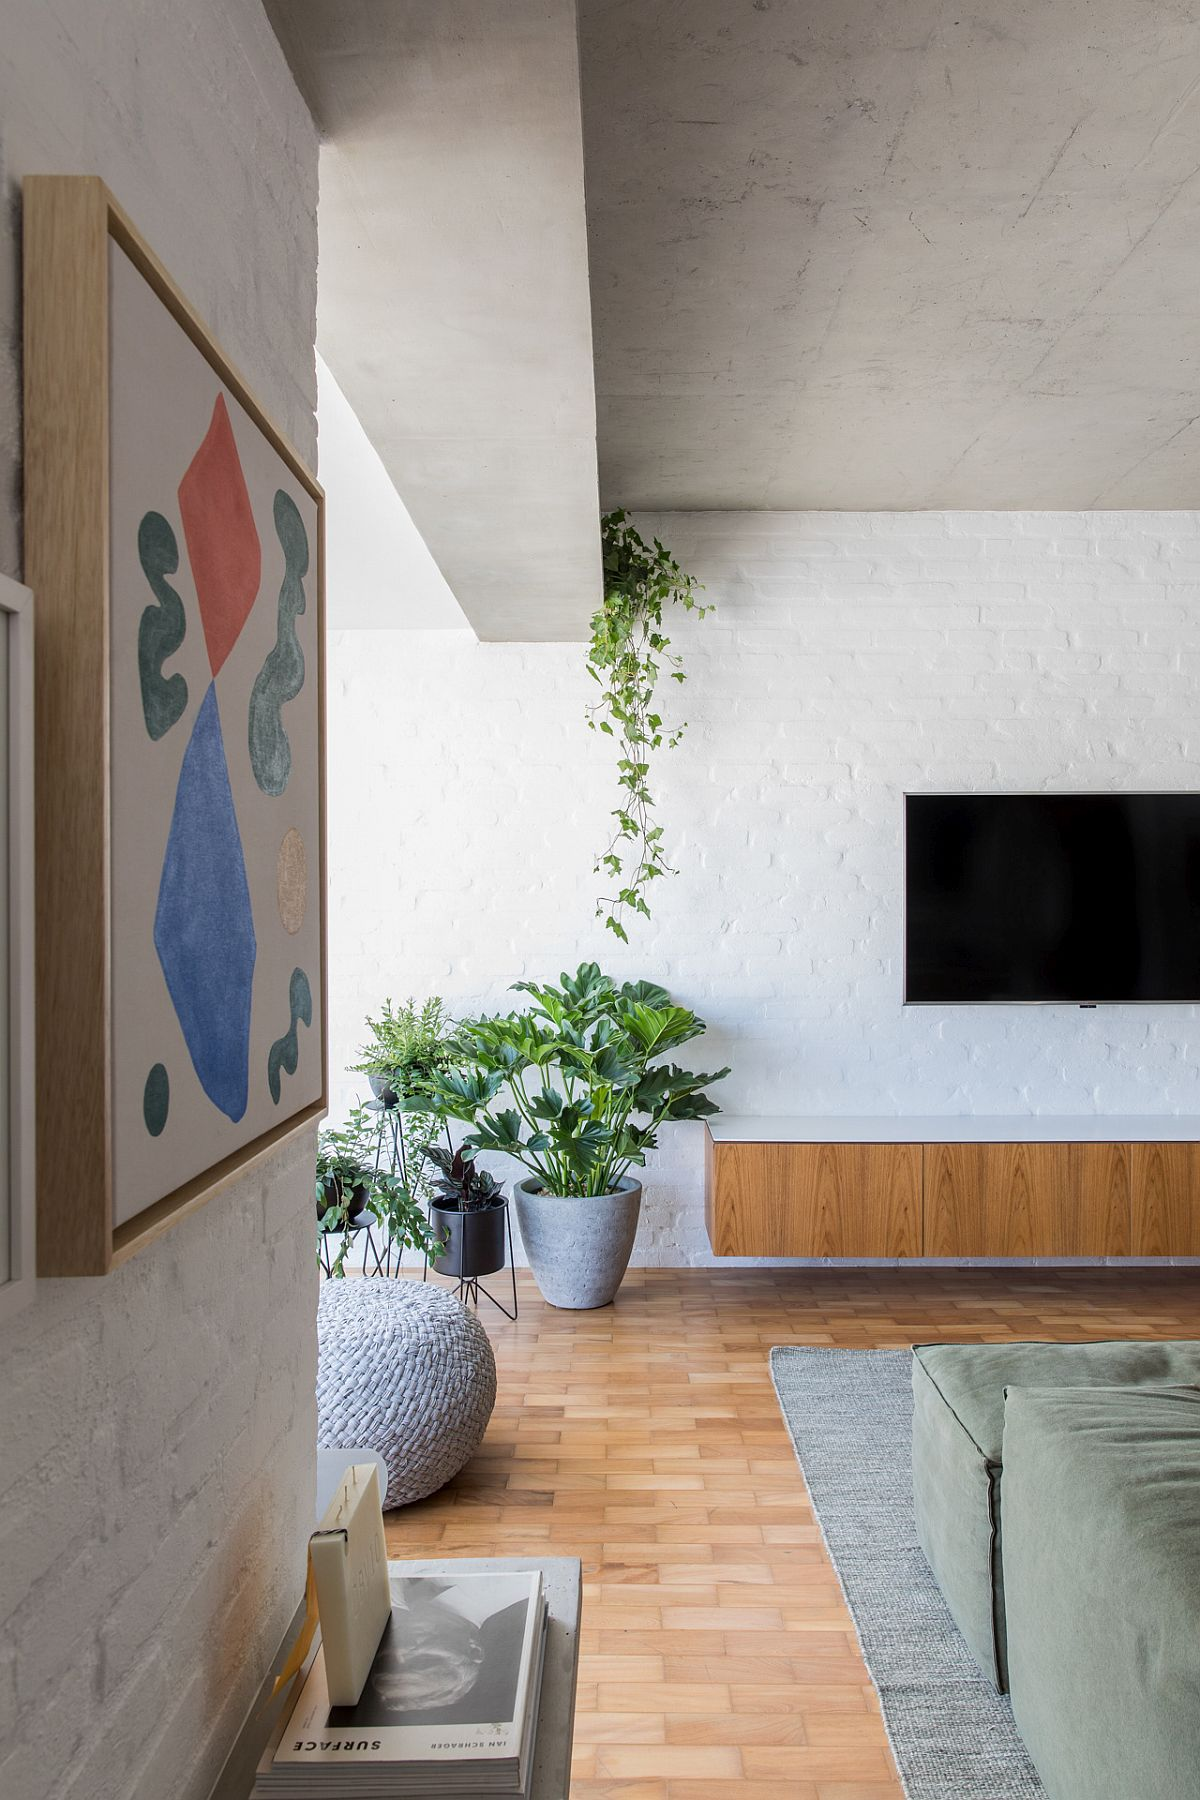 Select wall art pieces add color to the neutral interior in white, wood and gray